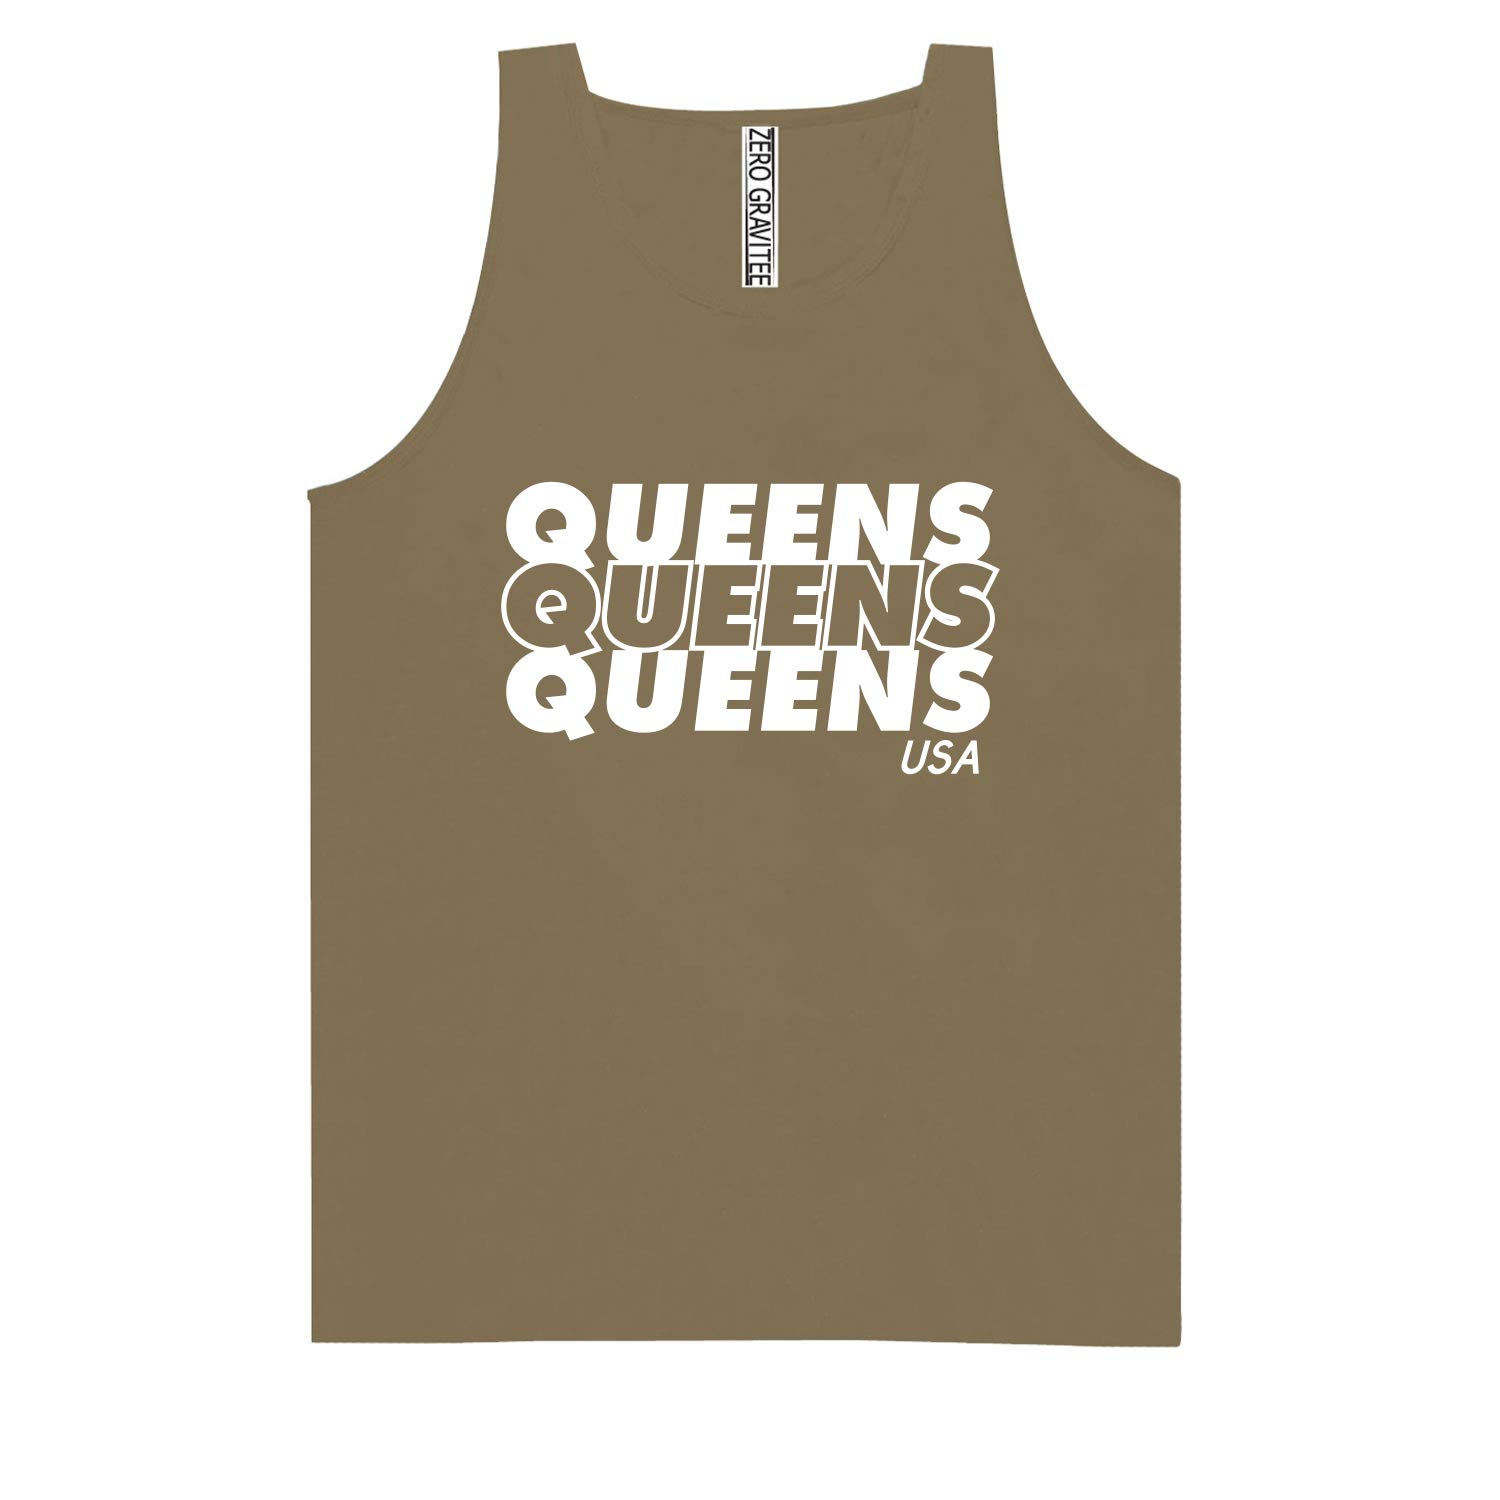 Queens USA Adult Pigment Dye Tank Top